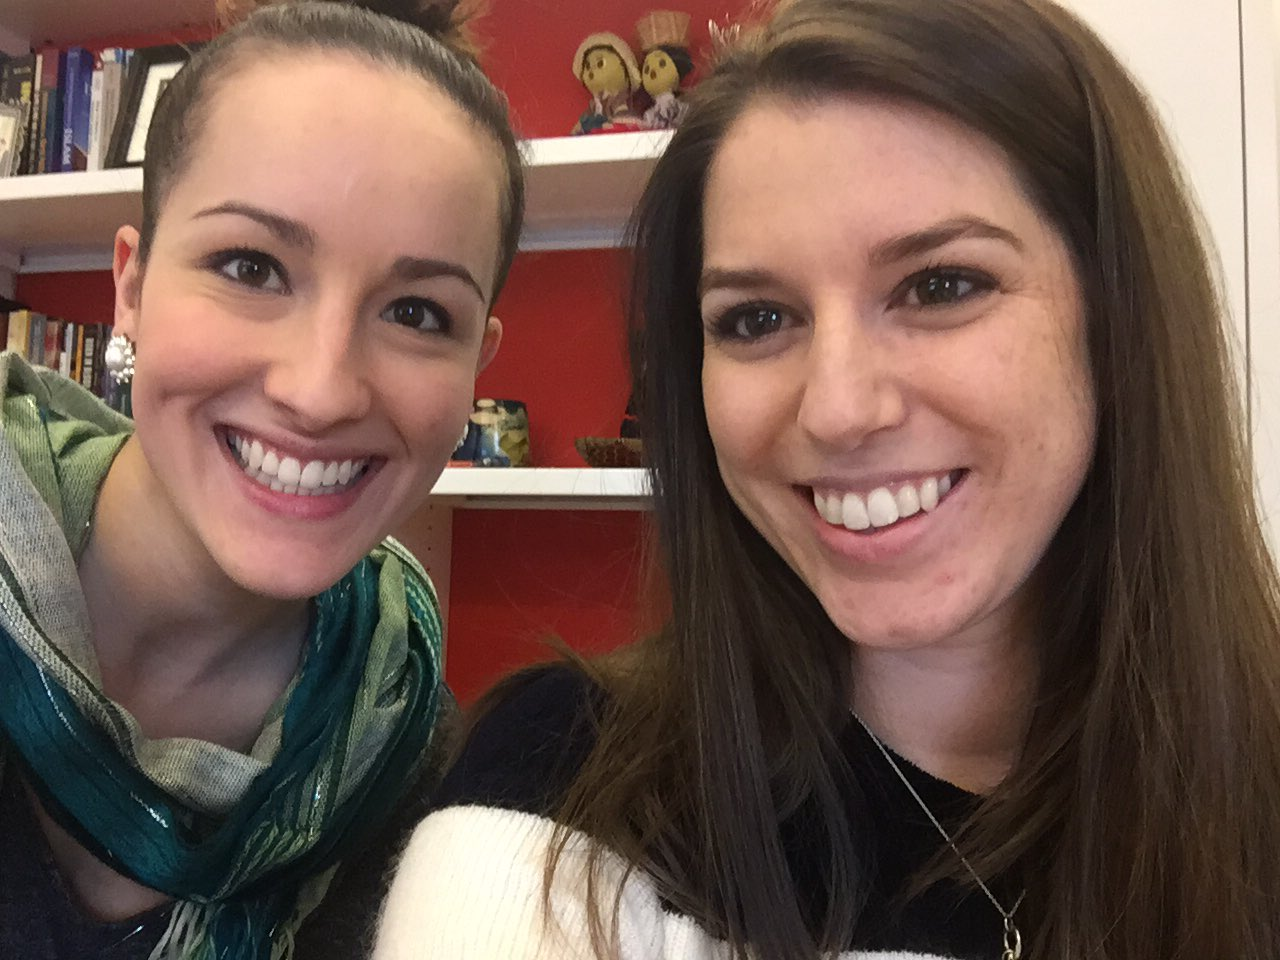 Admissions counselor #selfie for March Photo Madness -- hi @MaryAtDson and @AmyatDson! #dsonphotos https://t.co/A1mEWBZ114